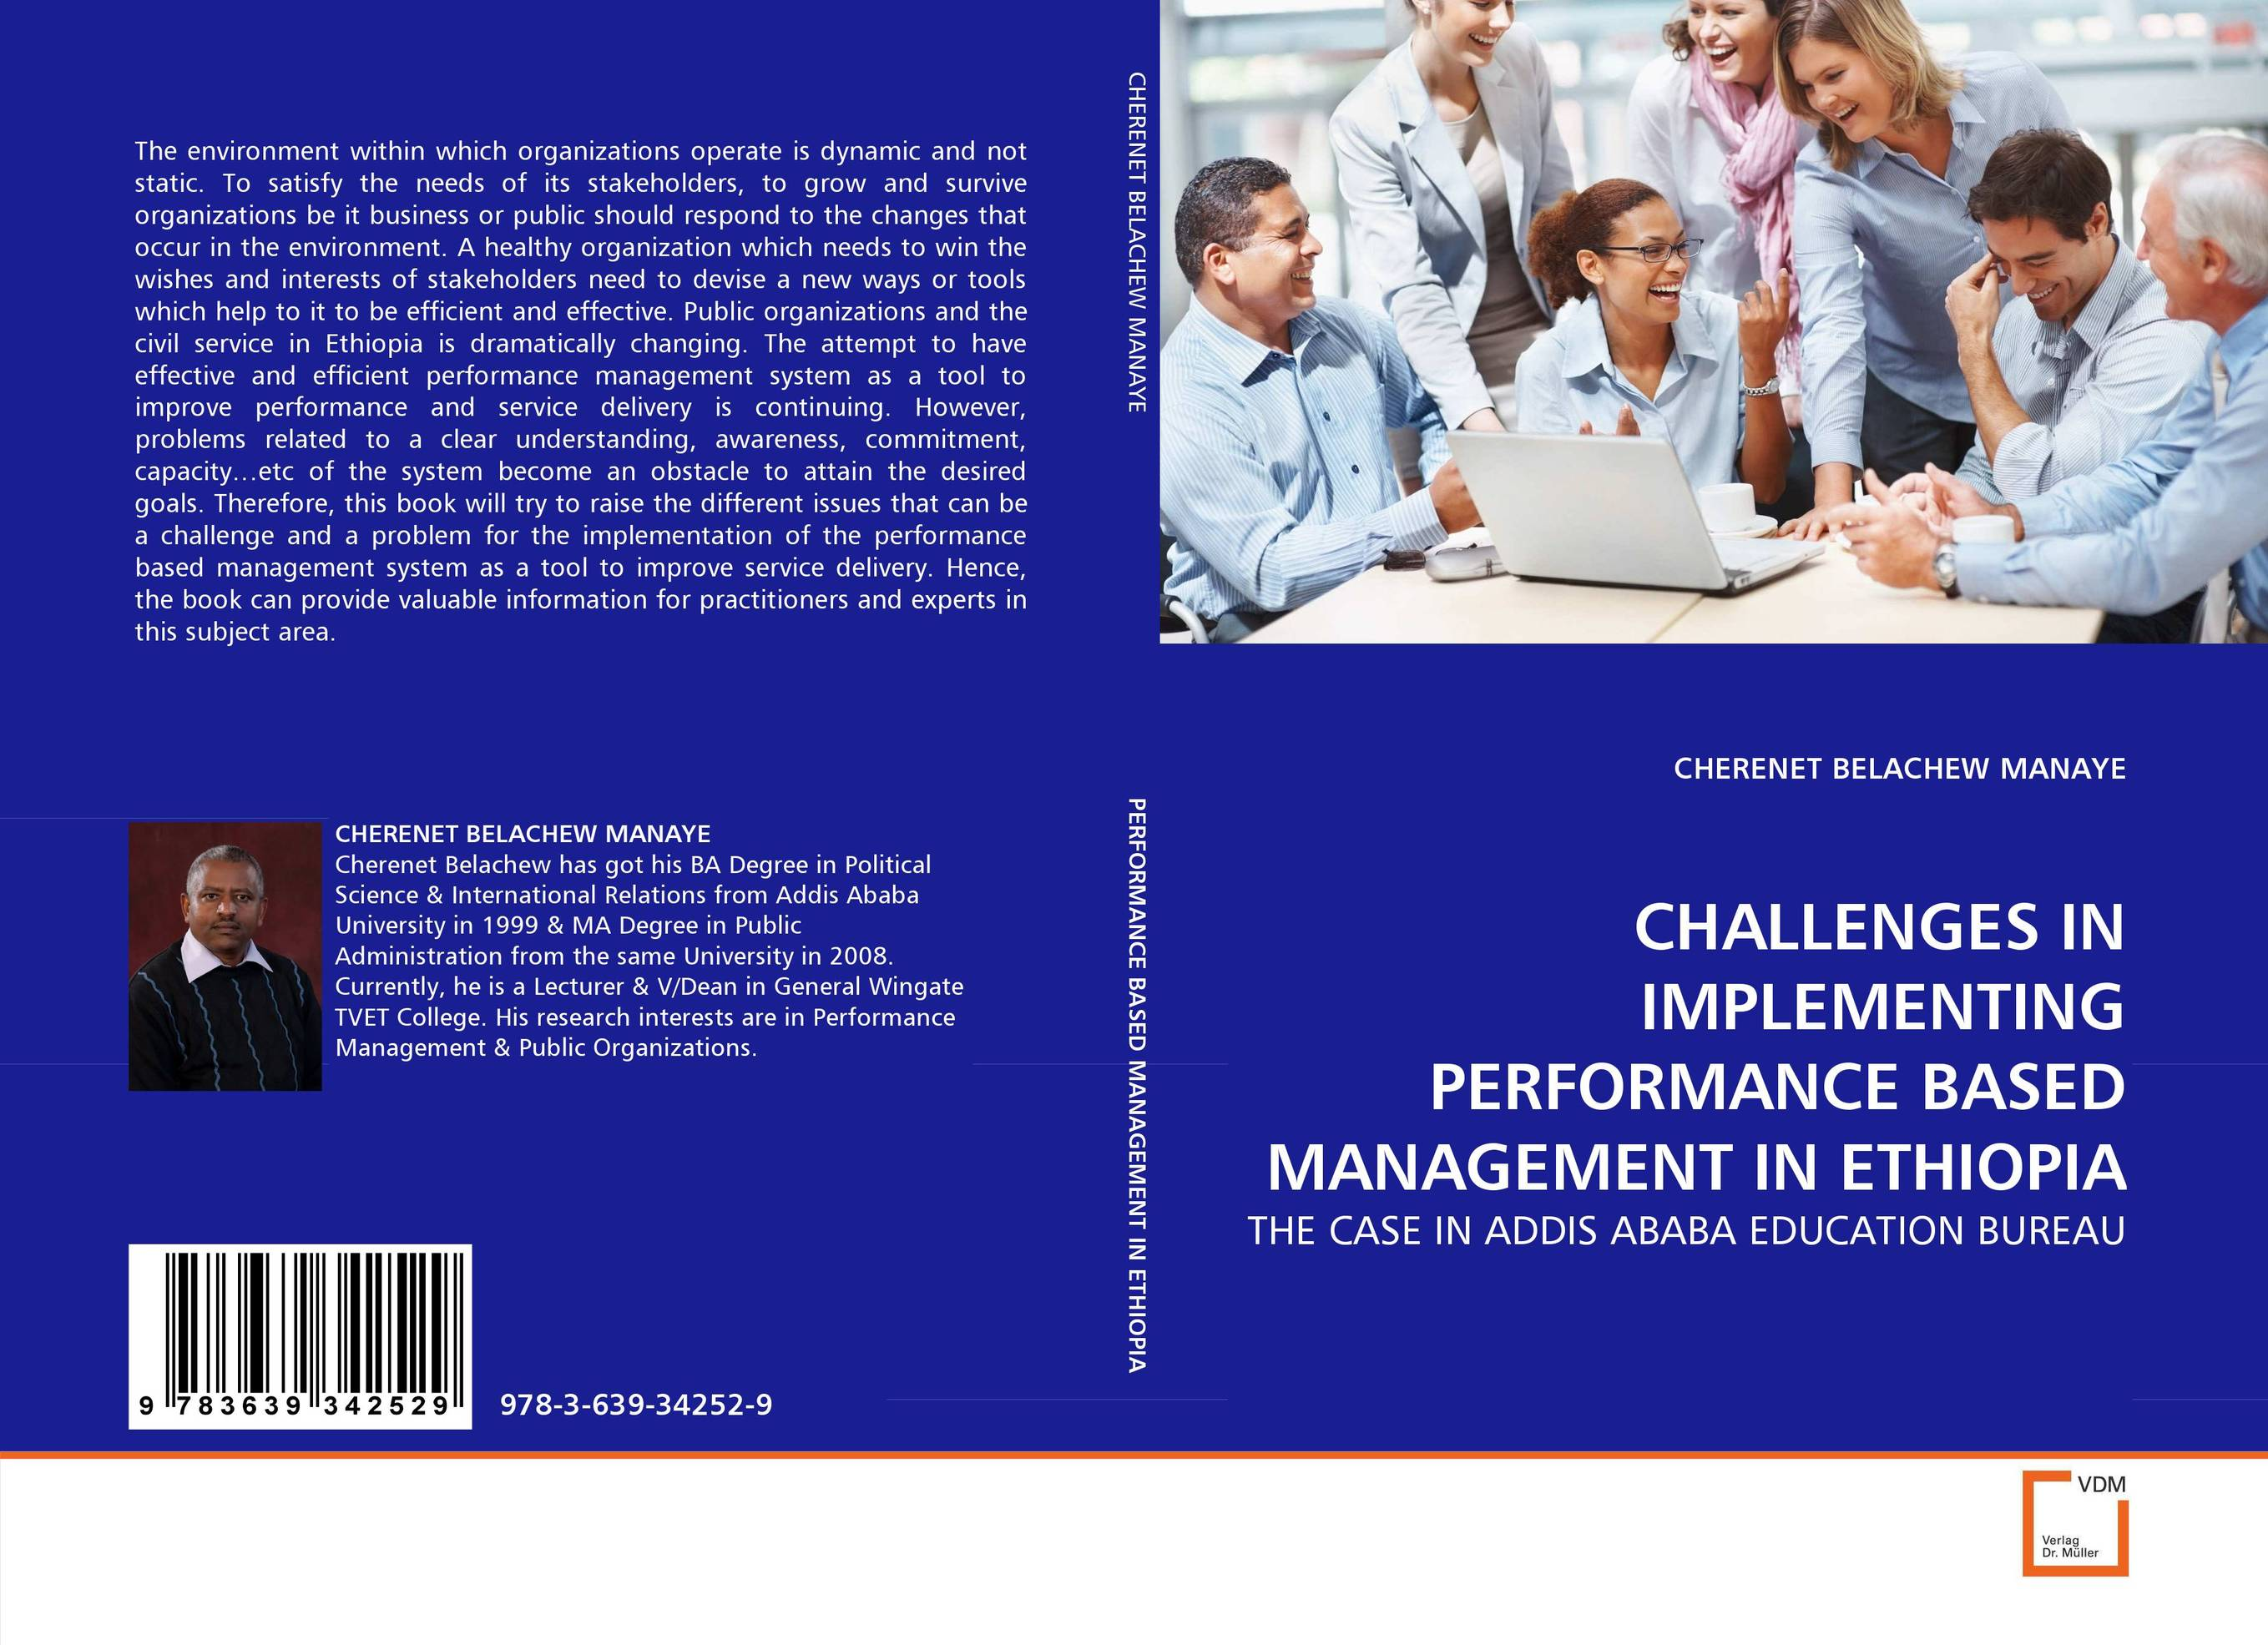 CHALLENGES IN IMPLEMENTING PERFORMANCE BASED MANAGEMENT IN ETHIOPIA a decision support tool for library book inventory management